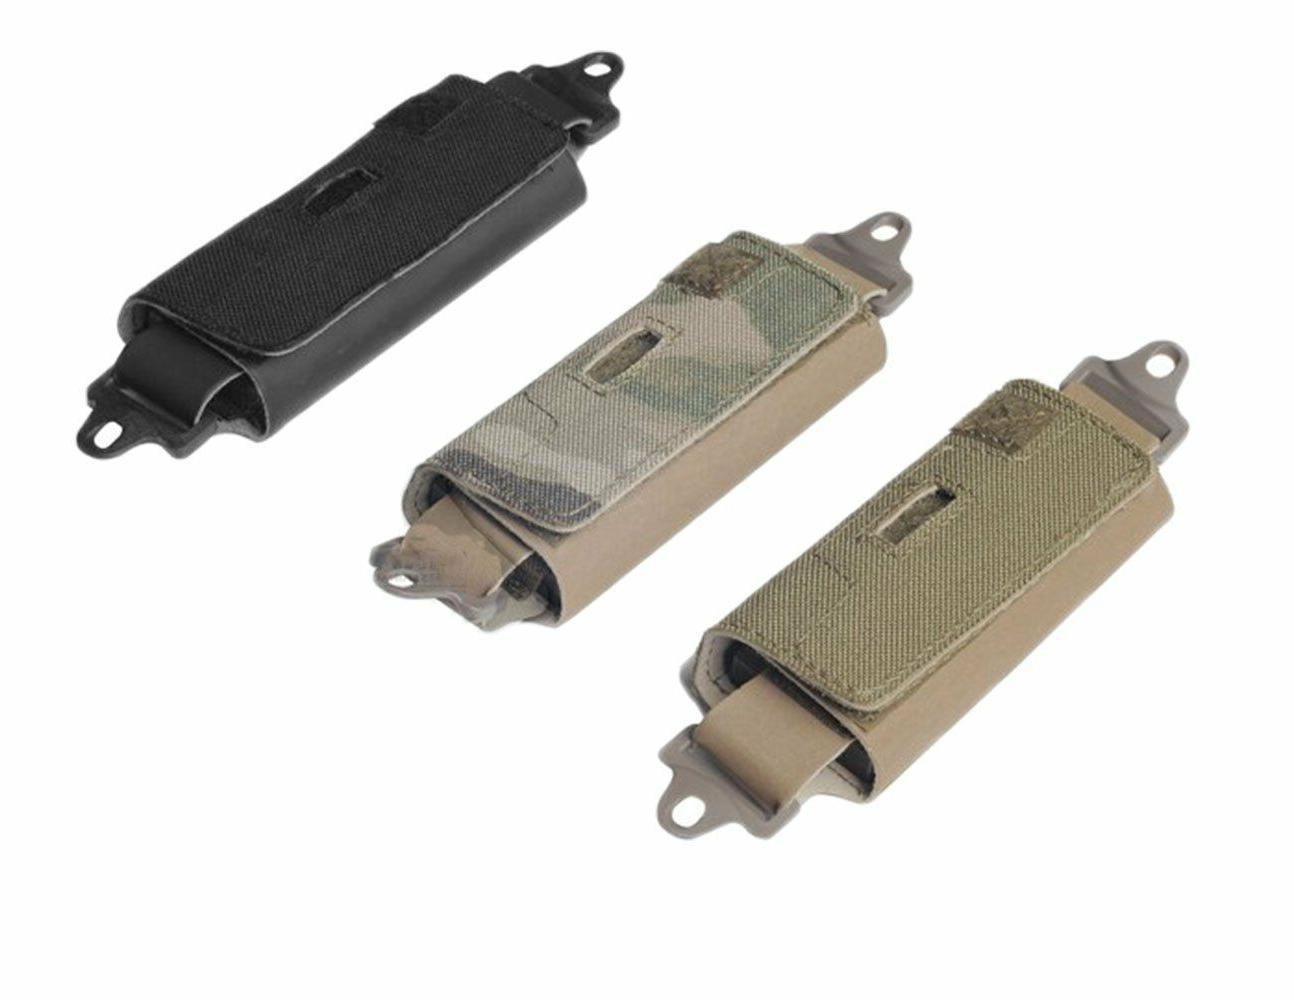 nvg counterweight kit for ops core crye